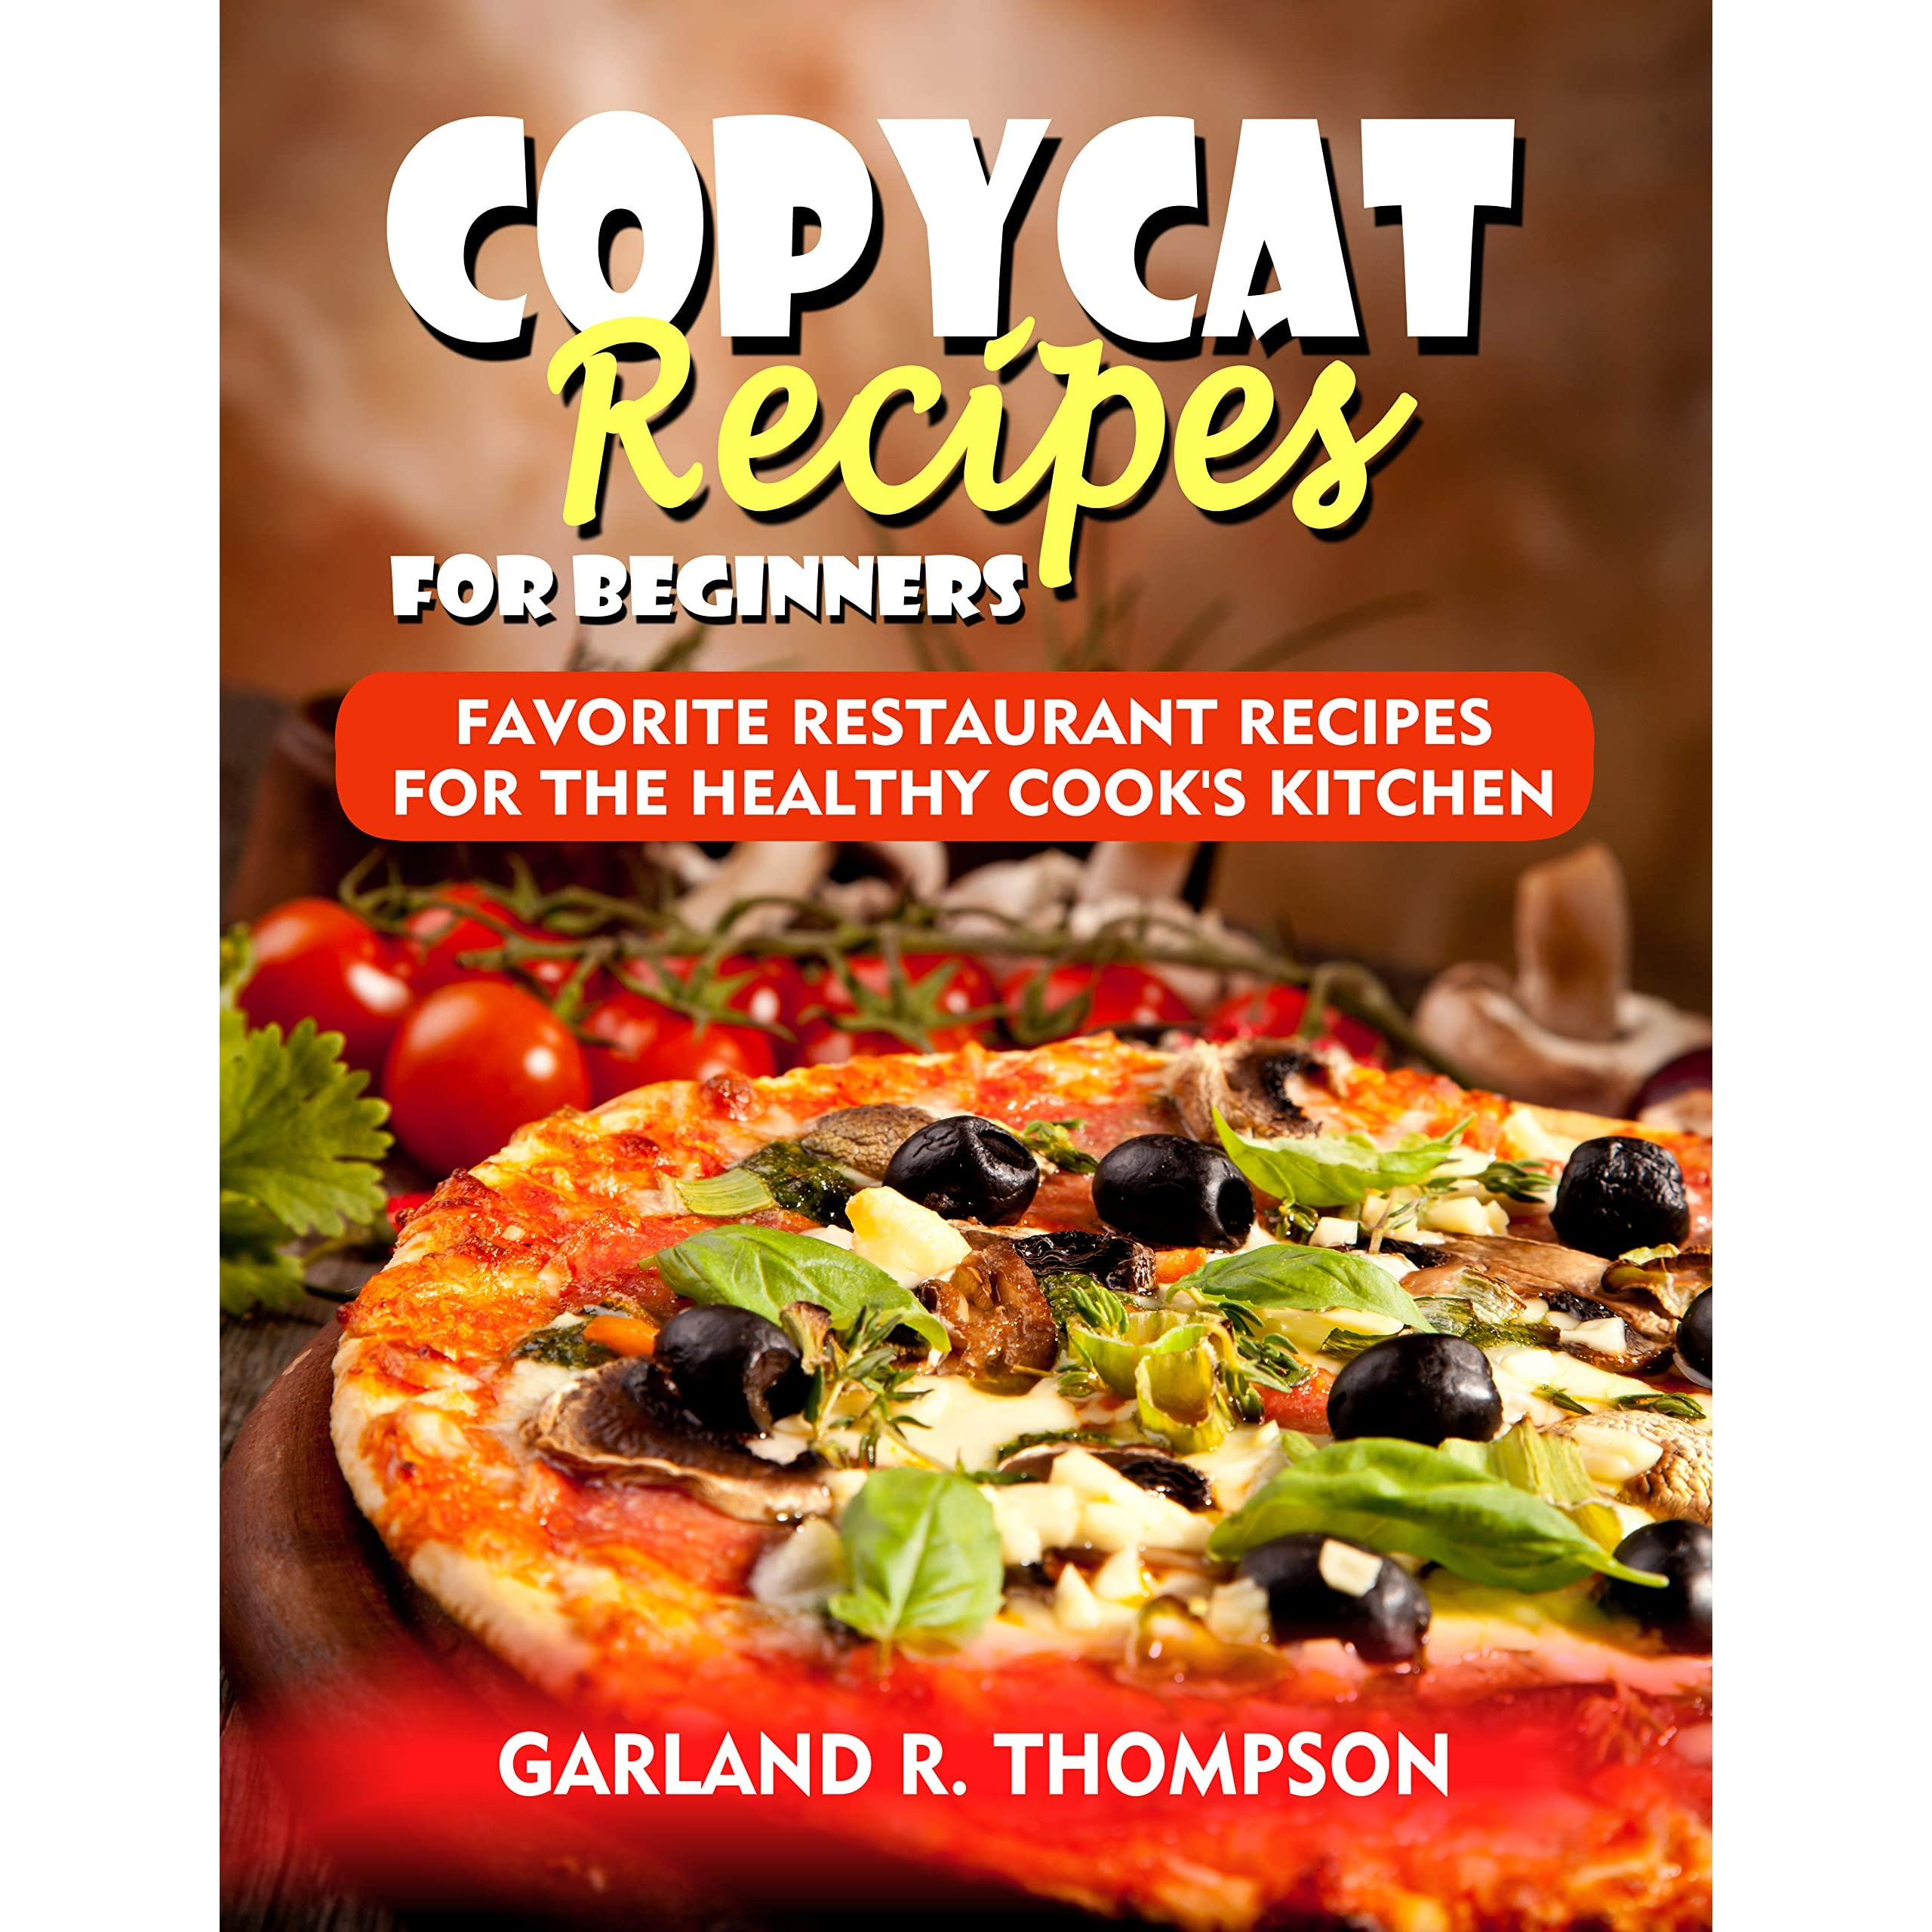 Copycat Recipes For Beginners Favorite Restaurant Recipes For The Healthy Cook S Kitchen By Garland R Thompson